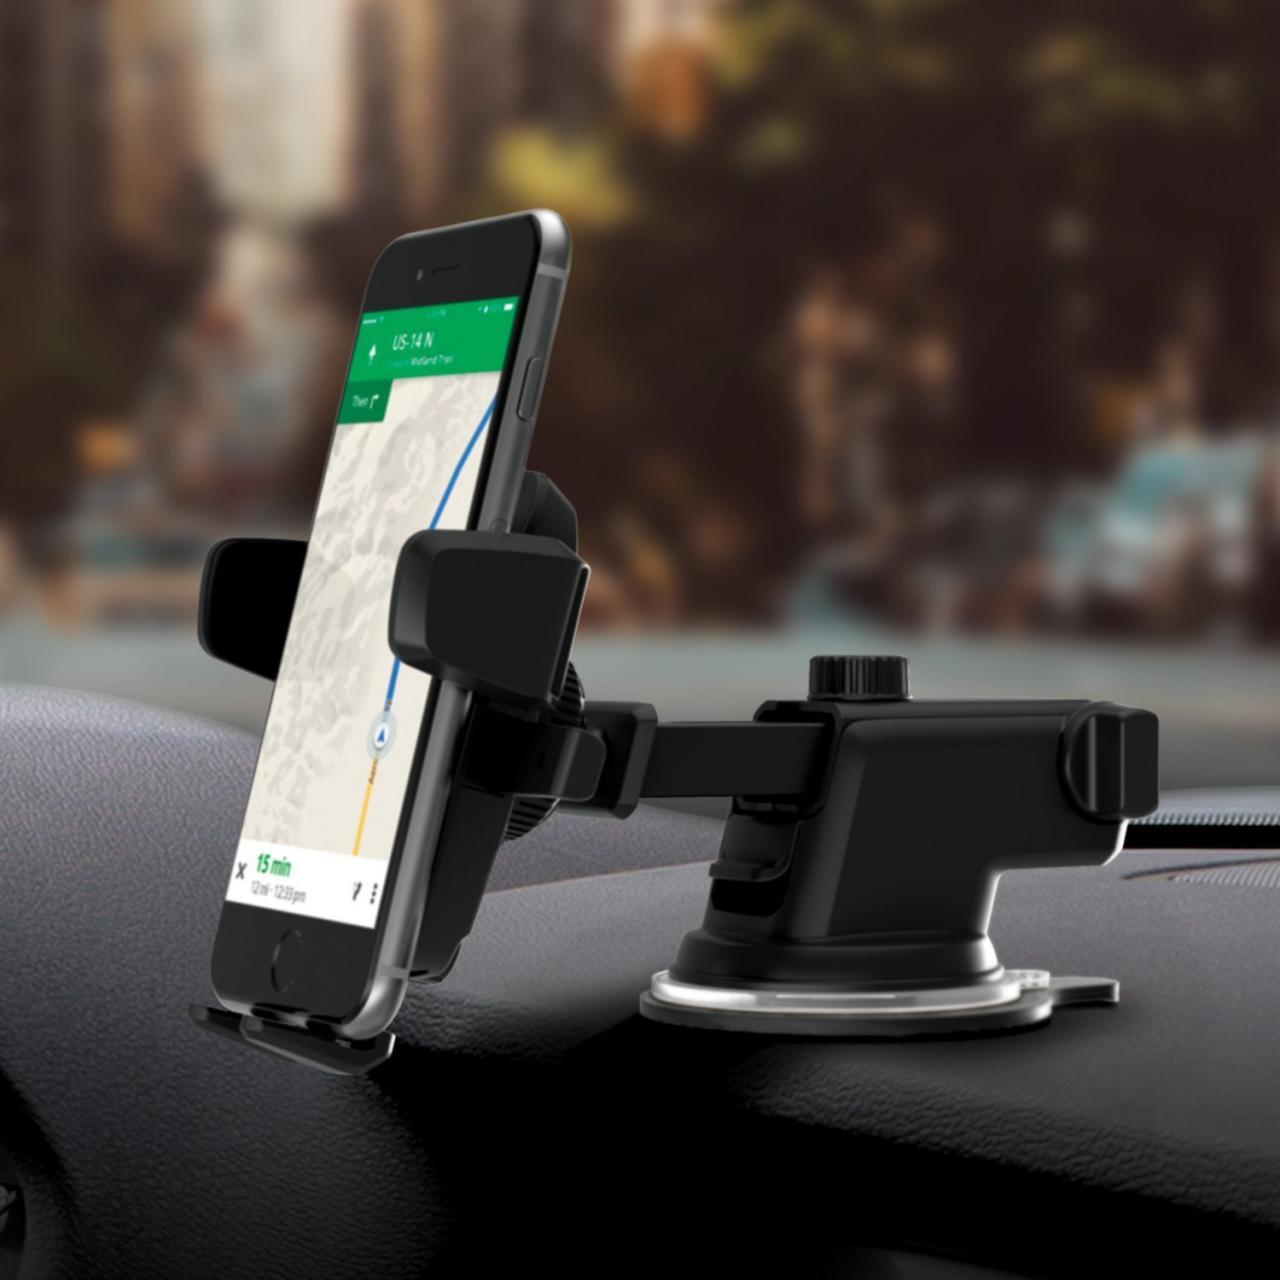 Top 10 Best Car Phone Mount Holders for IPhone/Samsung